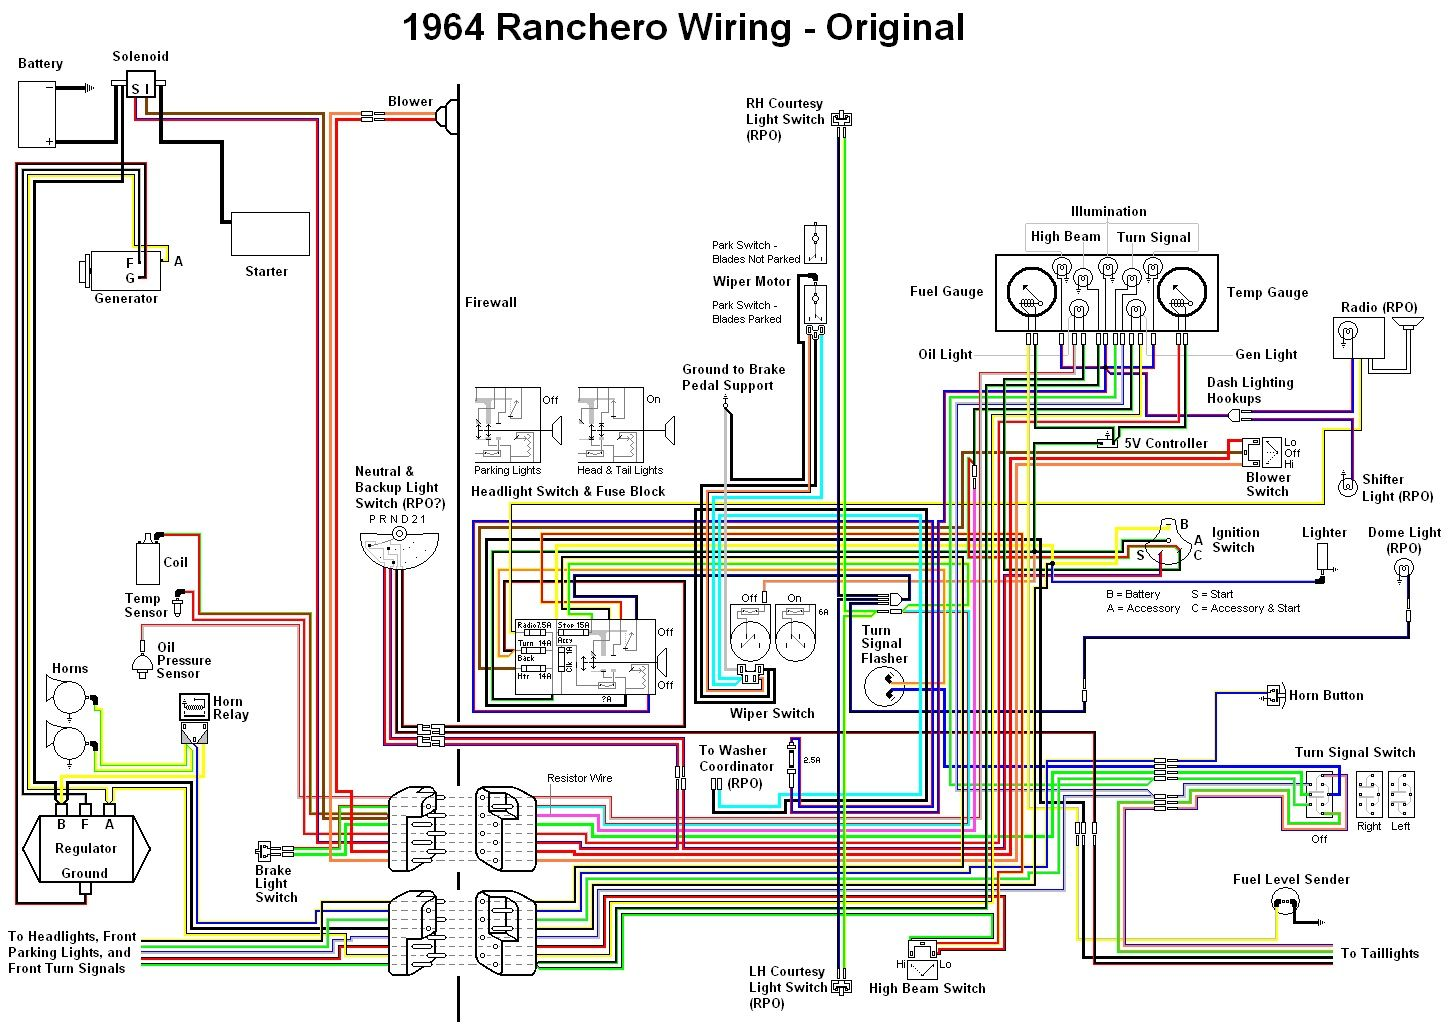 1964 Ford Falcon Ignition Switch Wiring | Wiring Liry Falcon Ignition Switch Wiring Diagram on